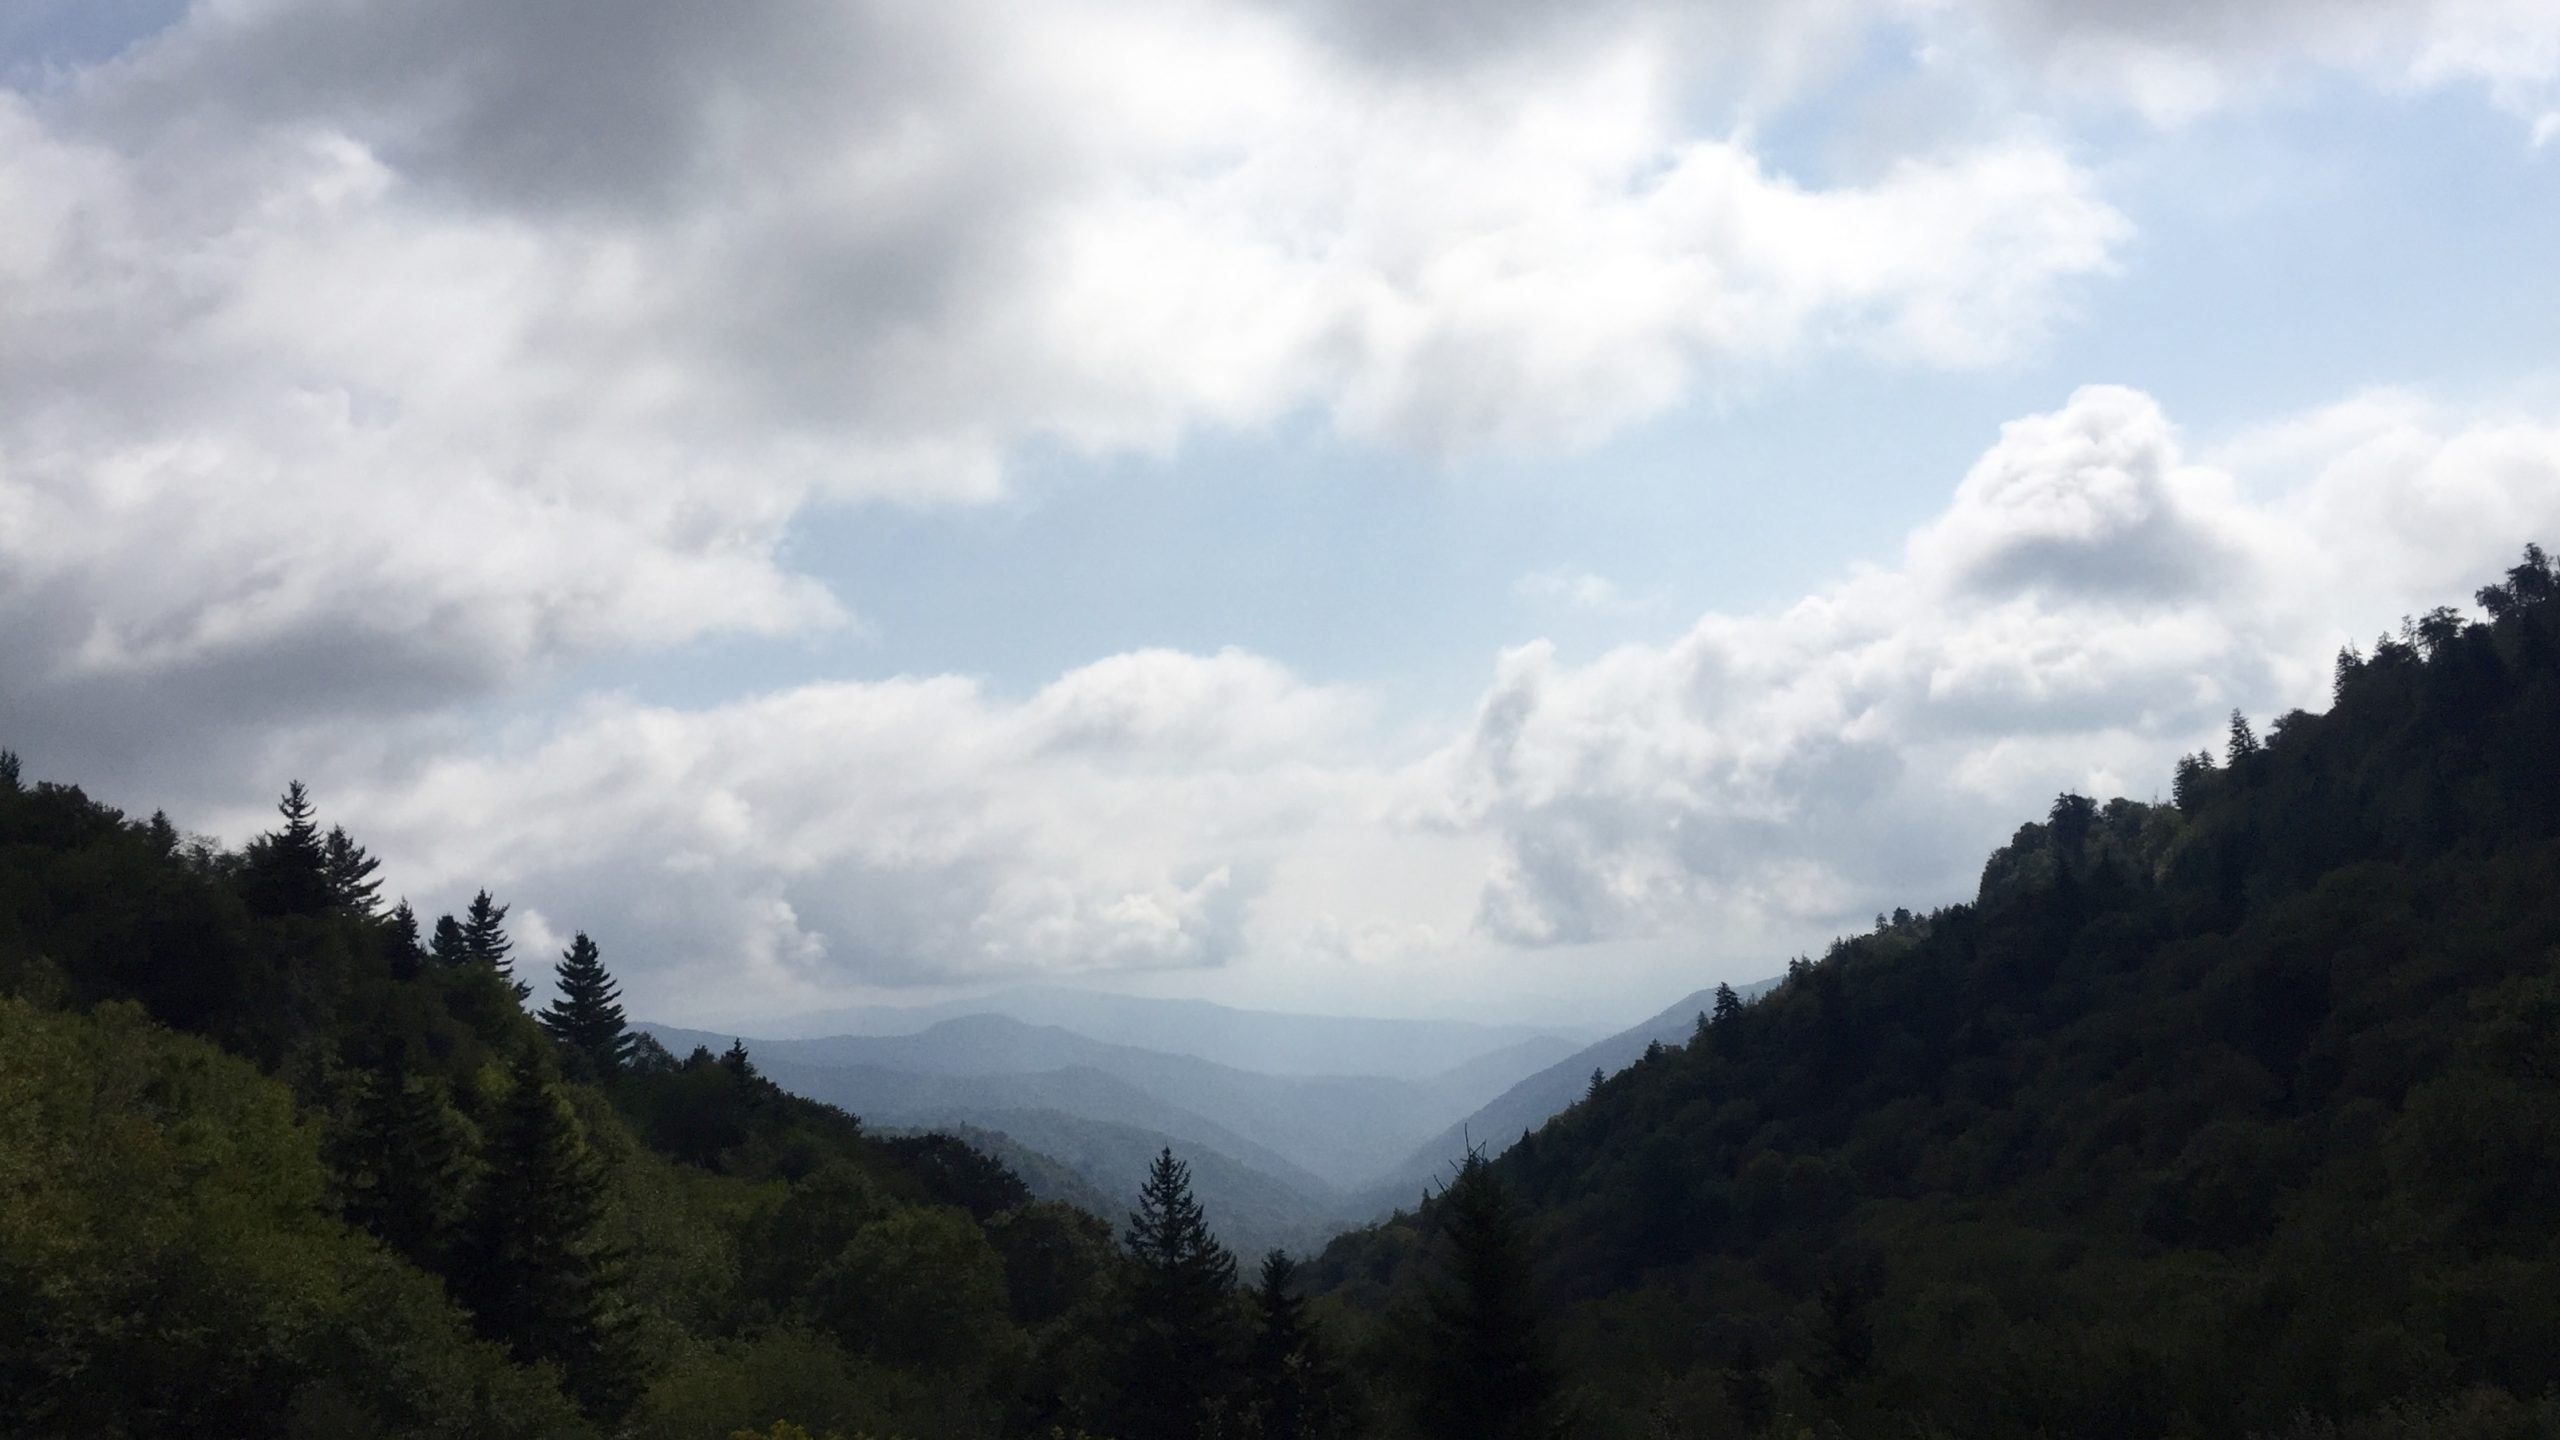 Looking down a valley at the smoky mountains in the distance